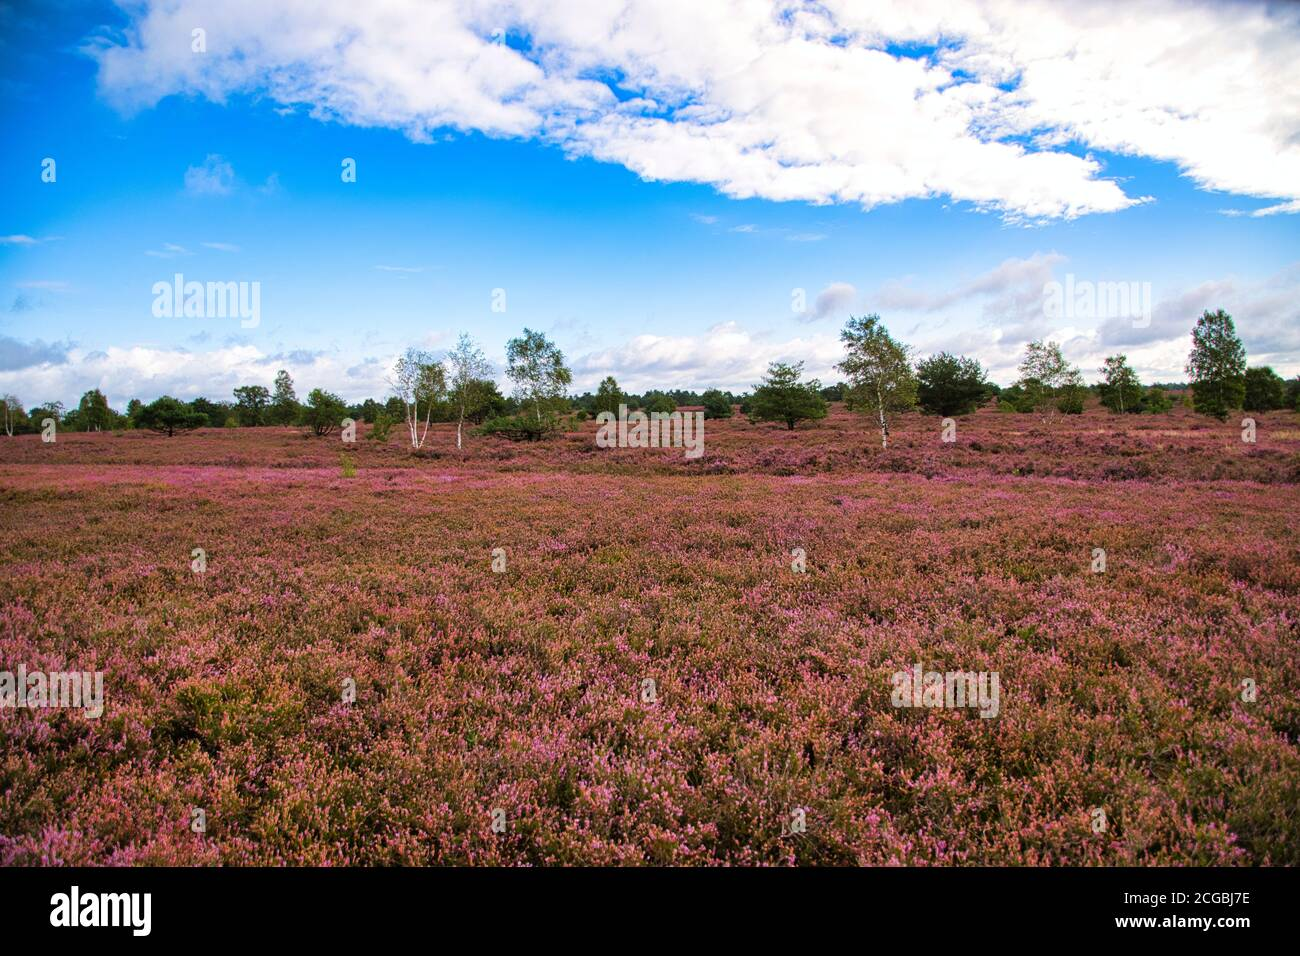 Ãú High Resolution Stock Photography And Images Page 7 Alamy